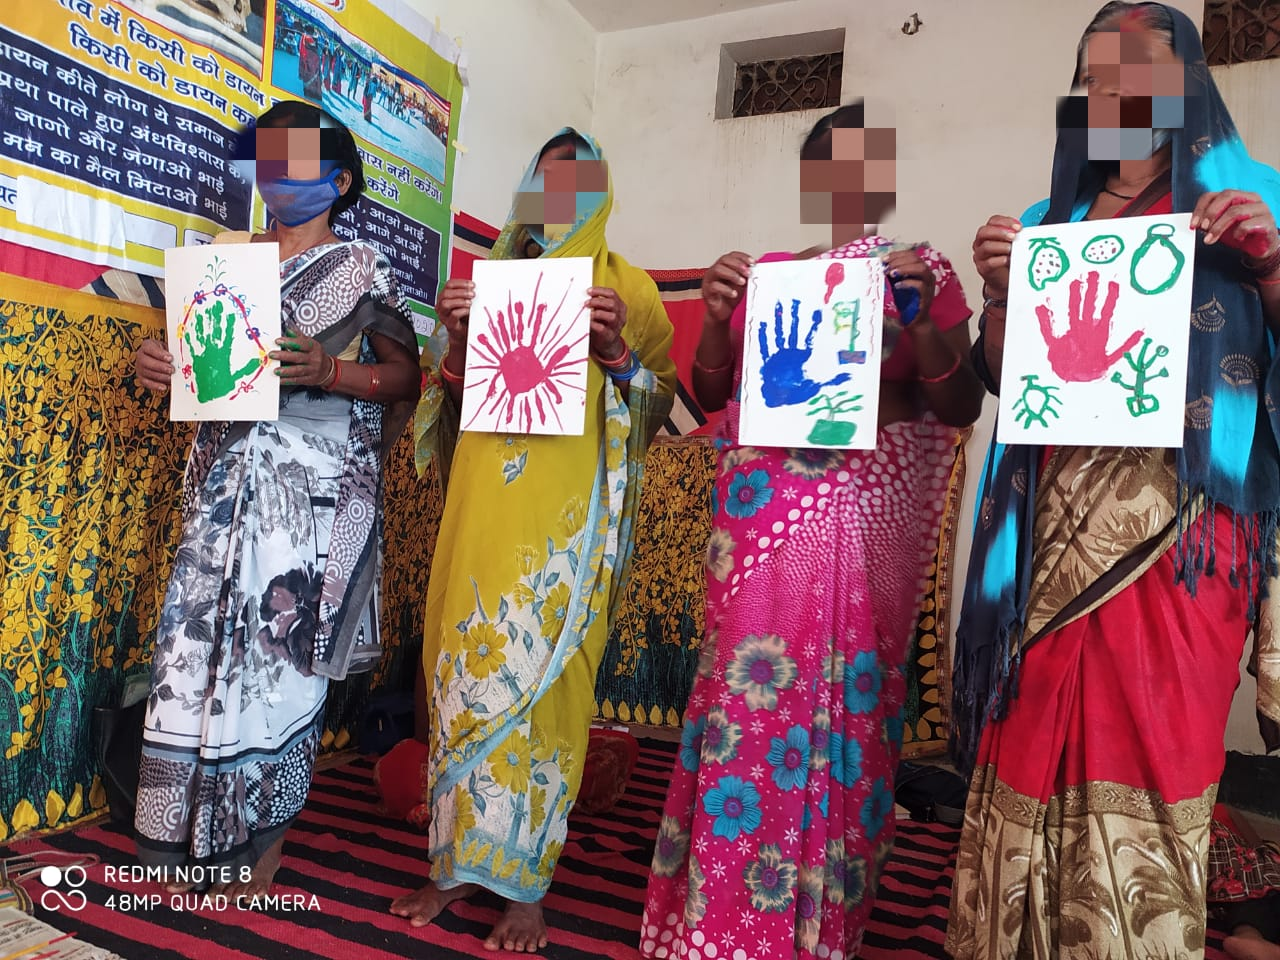 garima-project-launched-to-make-jharkhand-free-of-witchcraft